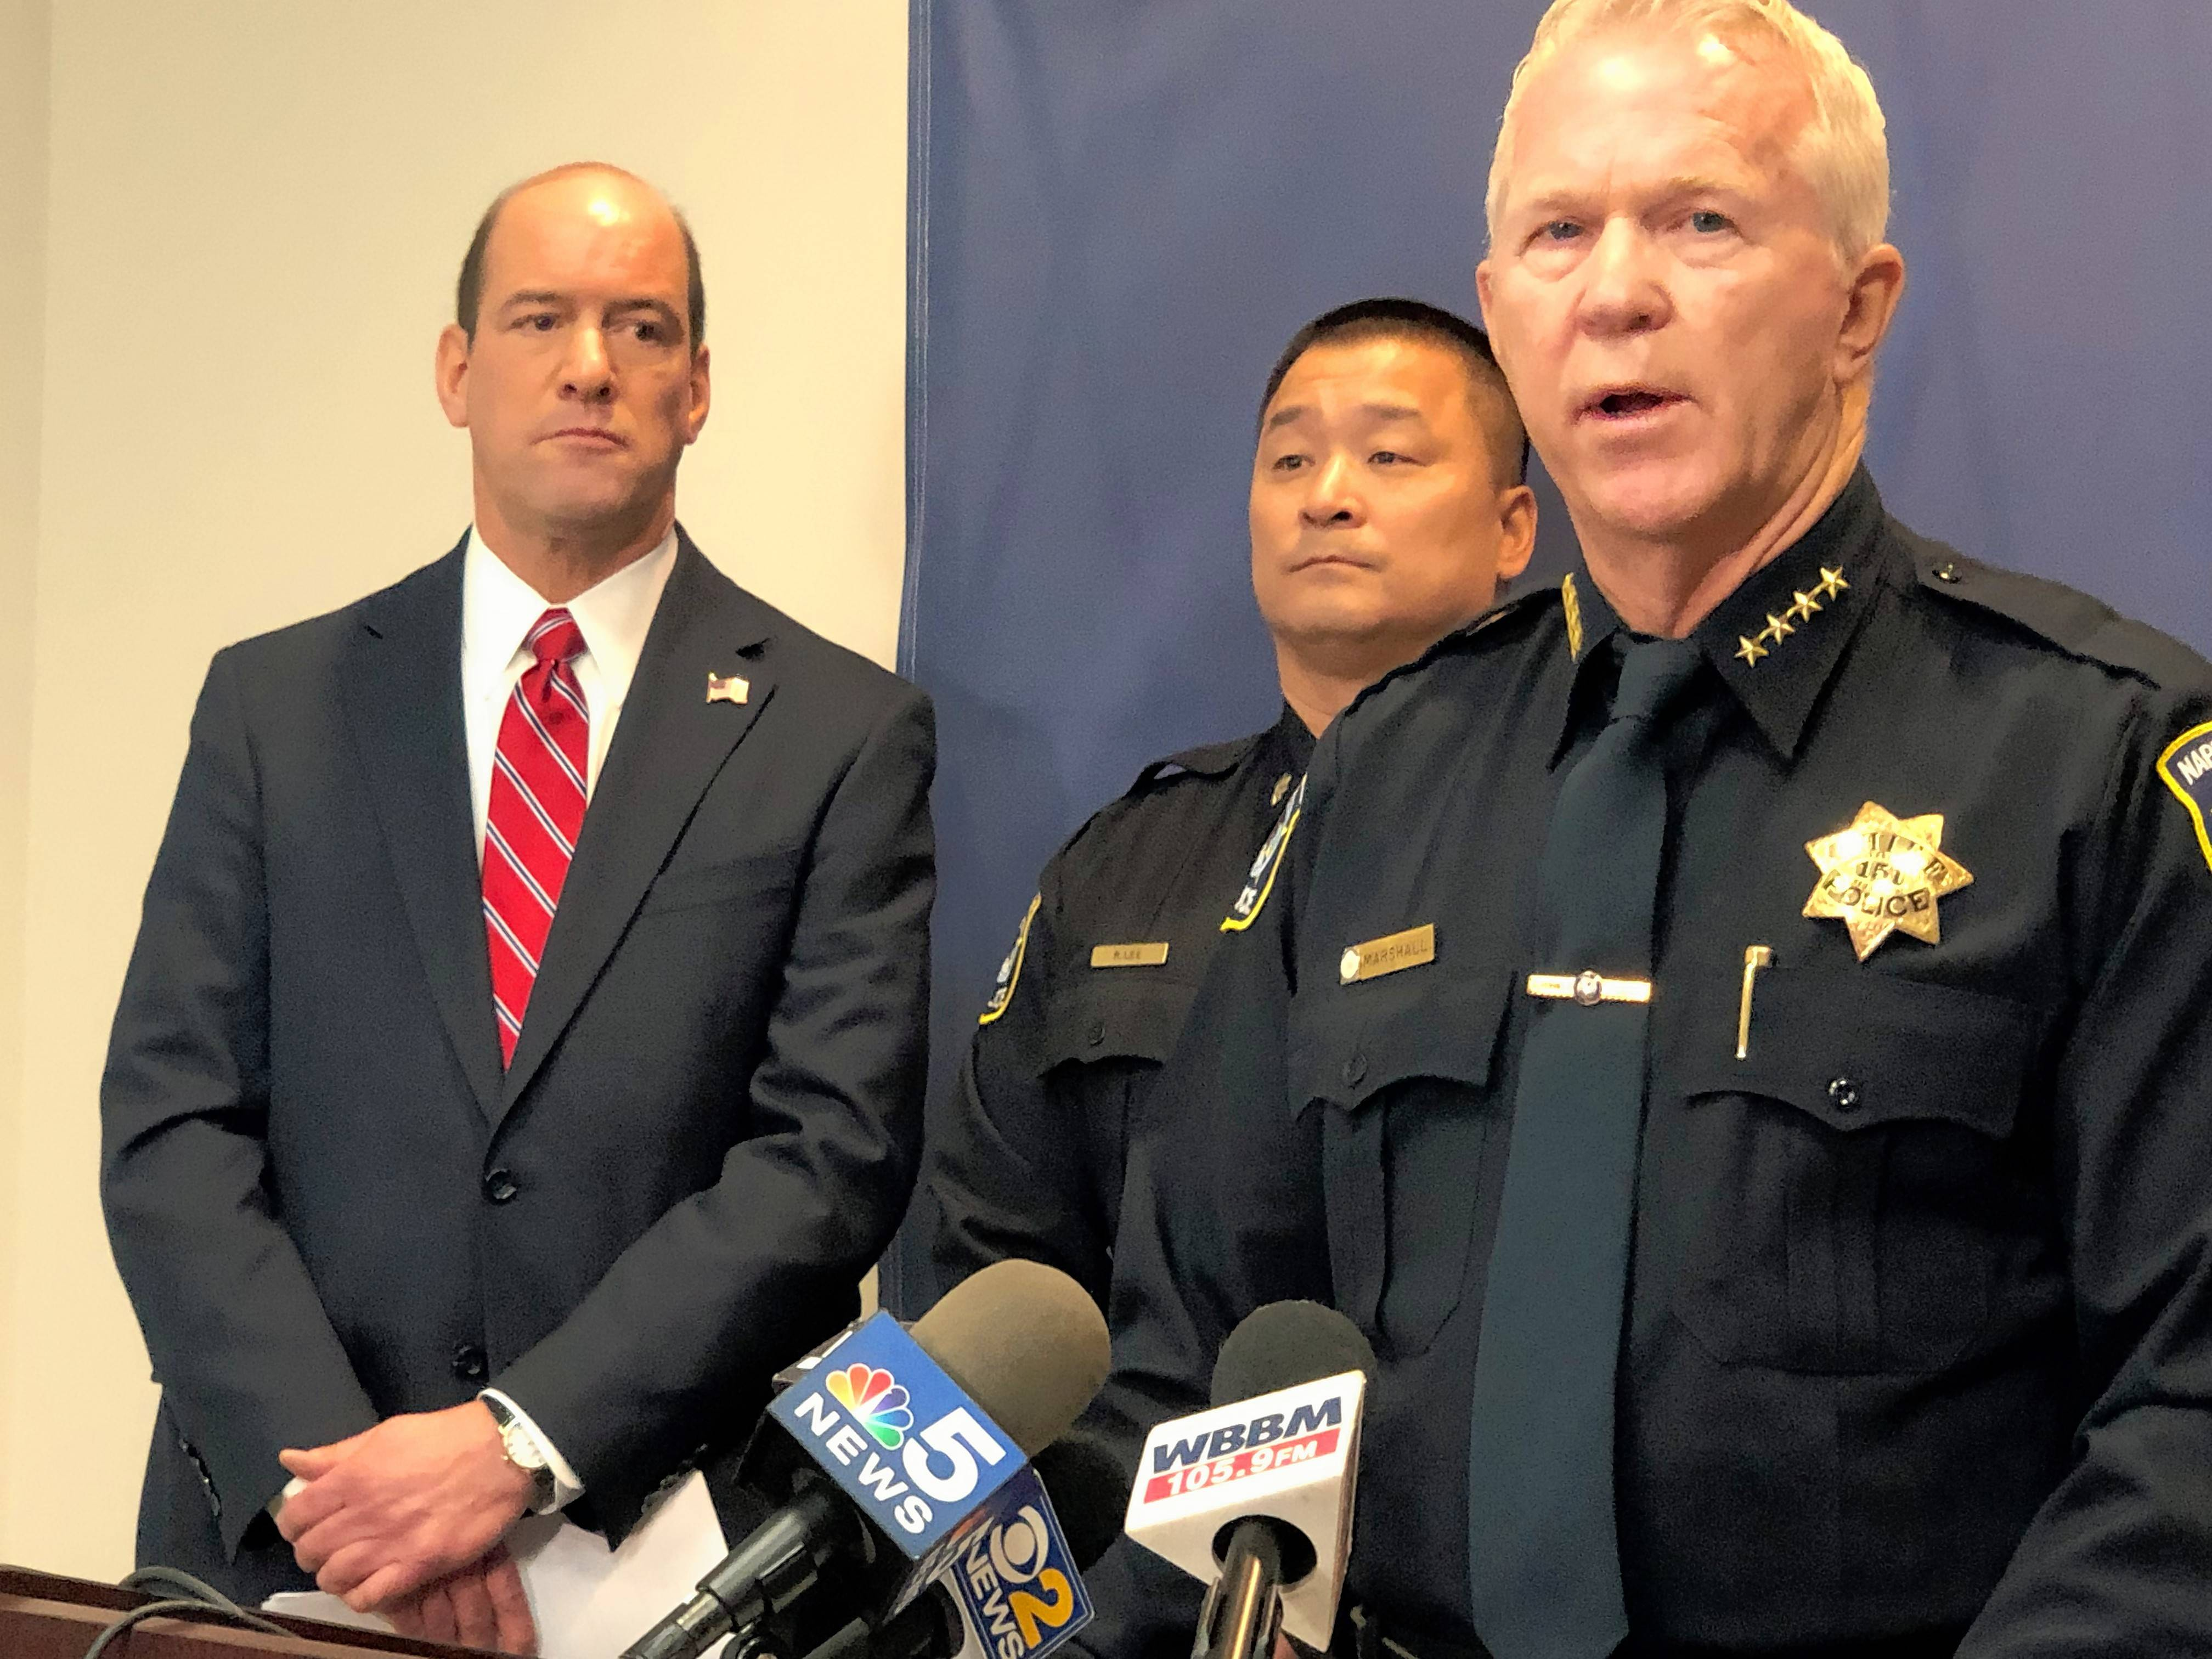 Naperville Police Chief Robert Marshall, right, and DuPage County State's Attorney Robert Berlin, left, address the media after a Rockford man, his girlfriend and his mother were charged with murder in the death of a Naperville man whose body was found months later in a trash bin on the South Side of Chicago.